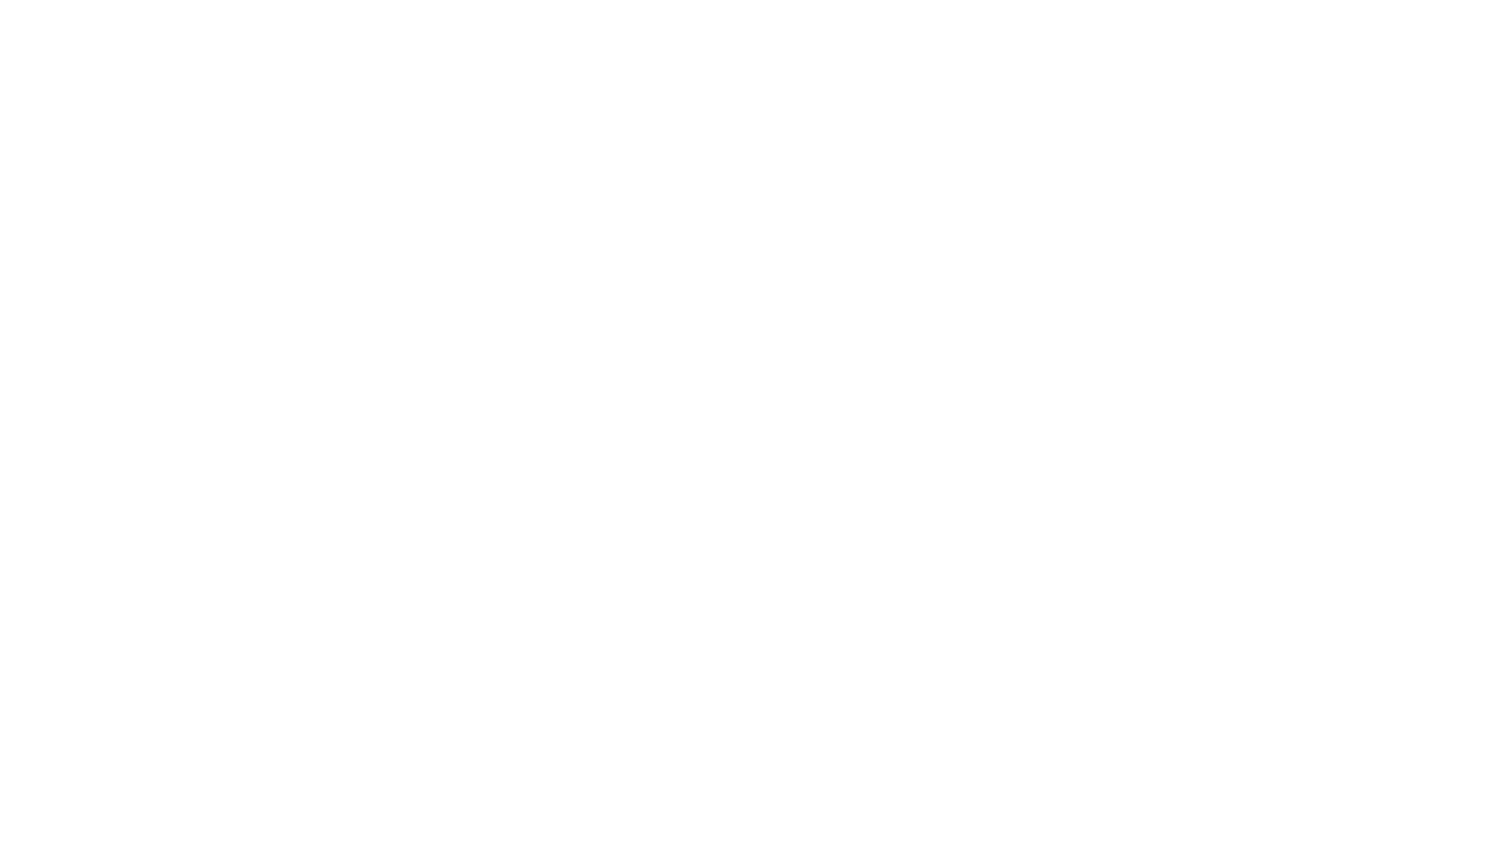 Black Arrow Enterprises